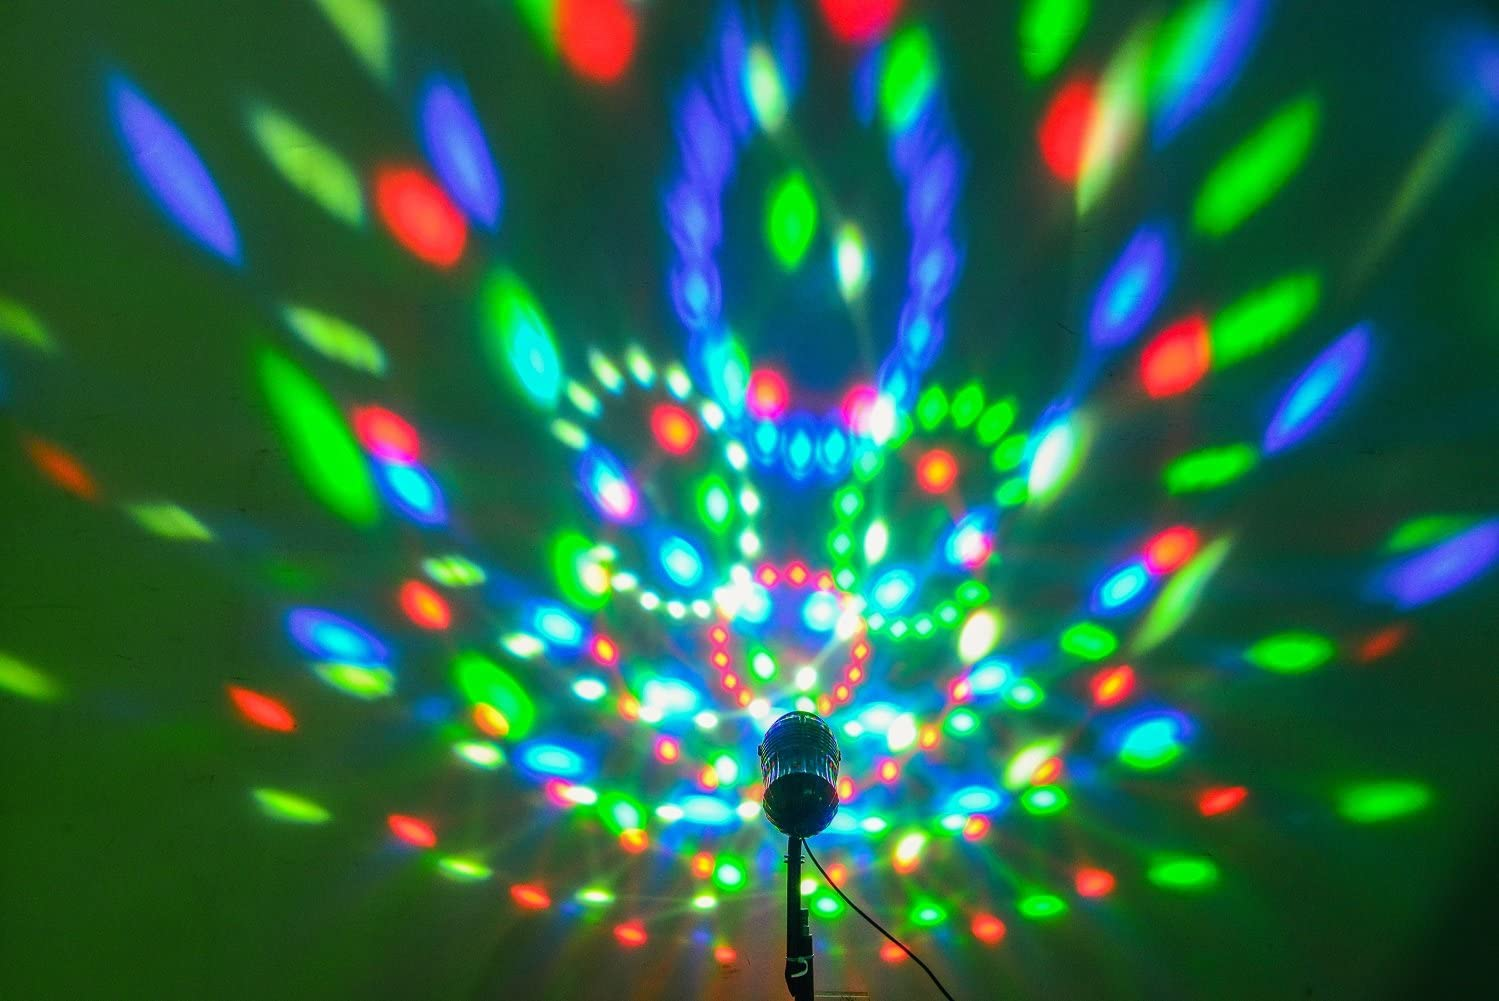 Topo Outdoor Disco Ball Light LED Party Lights Magic Rotating Color Changing Garden Christmas Landscape Projector for Home Wall Holiday Stage Decoration